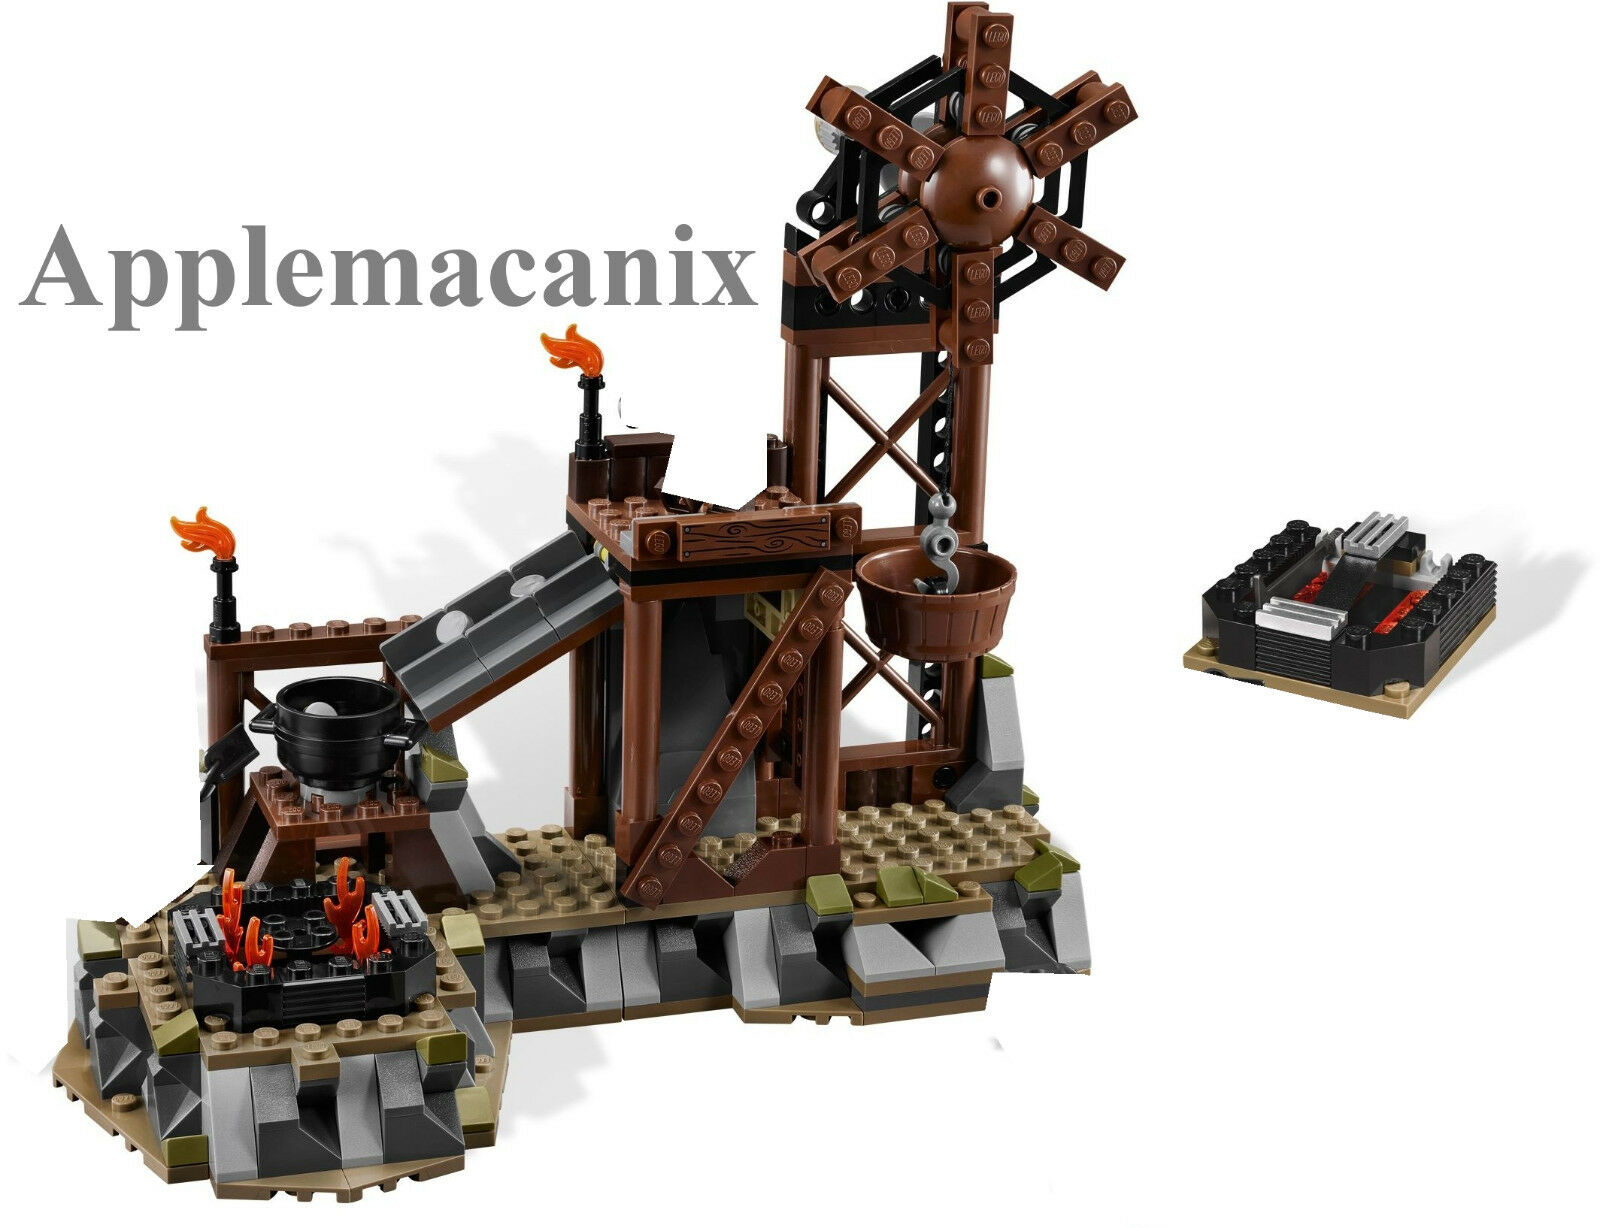 NEW LEGO Lord of the Rings LOTR 9476 The Orc Forge Set & manual - NO MINIFIGURES